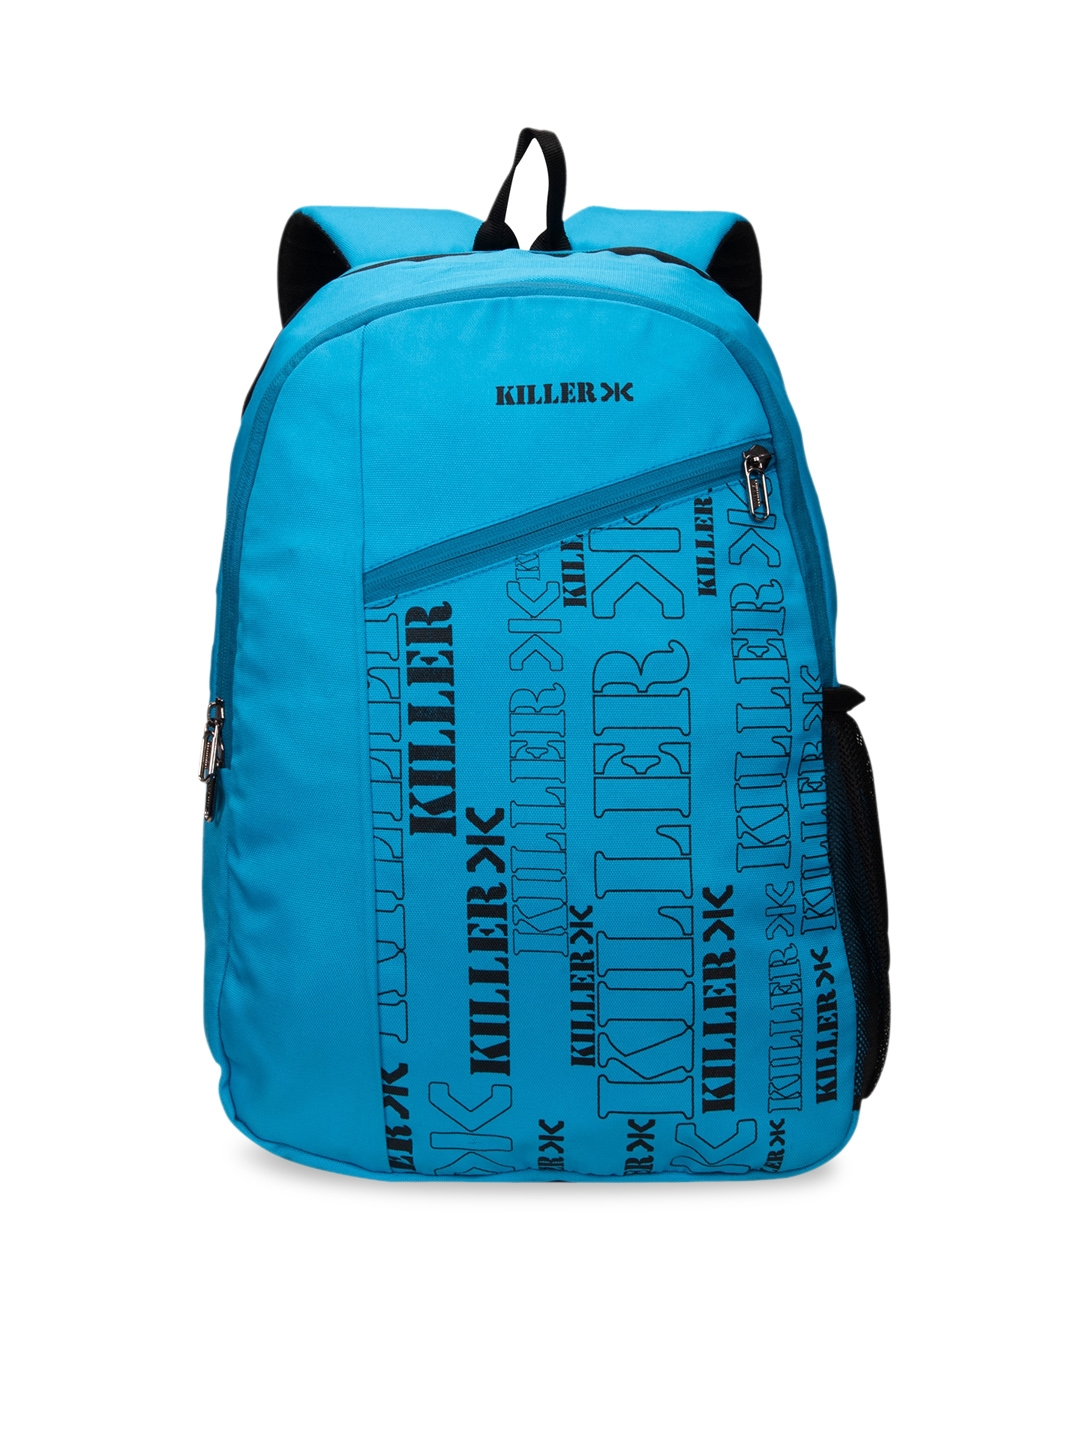 Killer Unisex Blue   Black Printed Medium Backpack